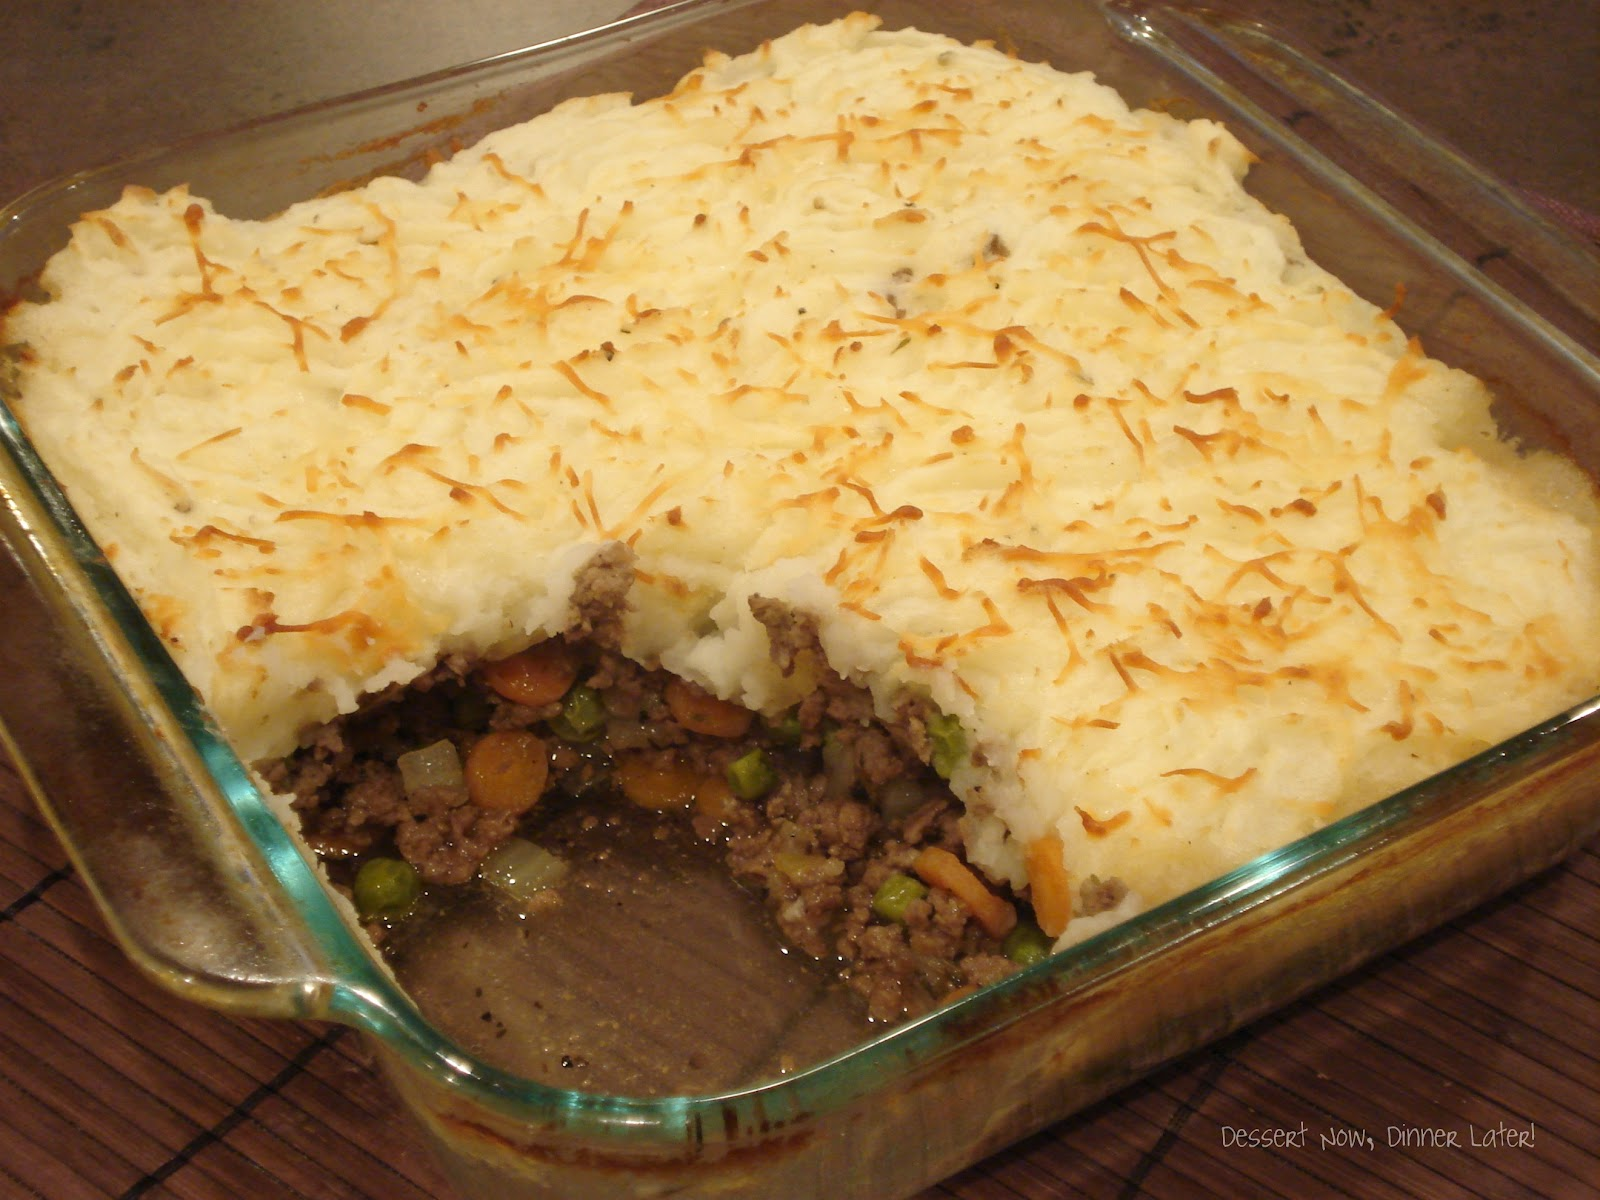 Shepherd's Pie - Dessert Now, Dinner Later!